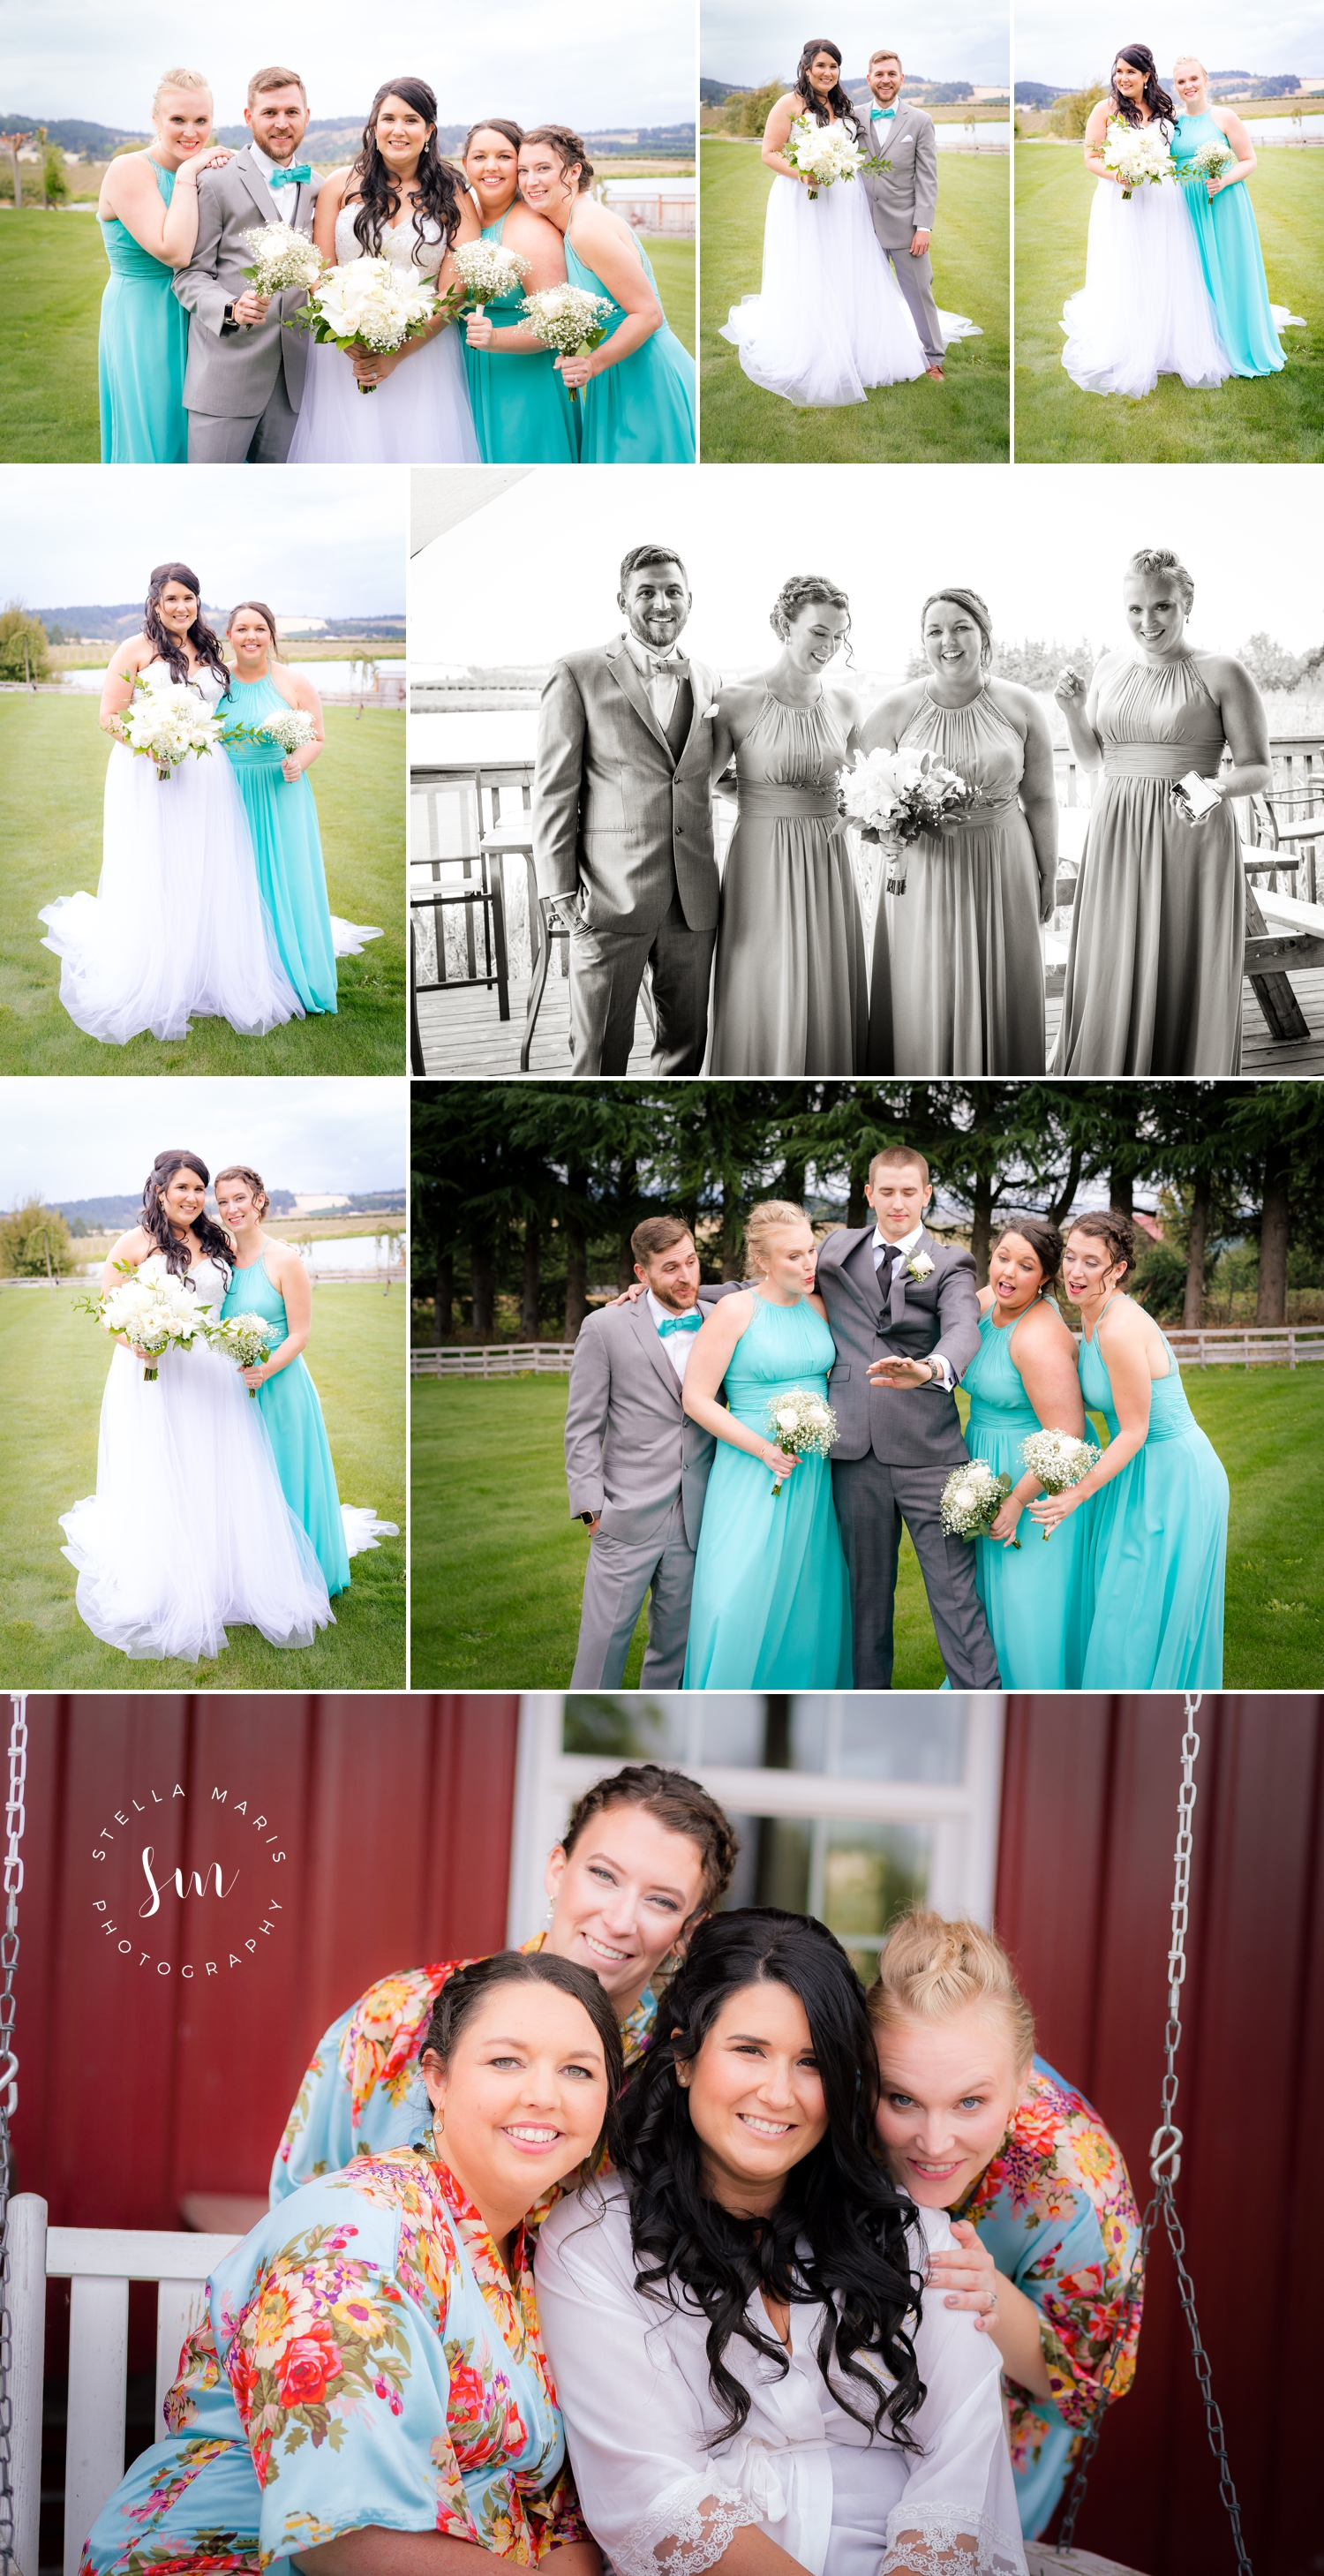 Stella Maris Photography - Wedding Party and Bridal Protrait